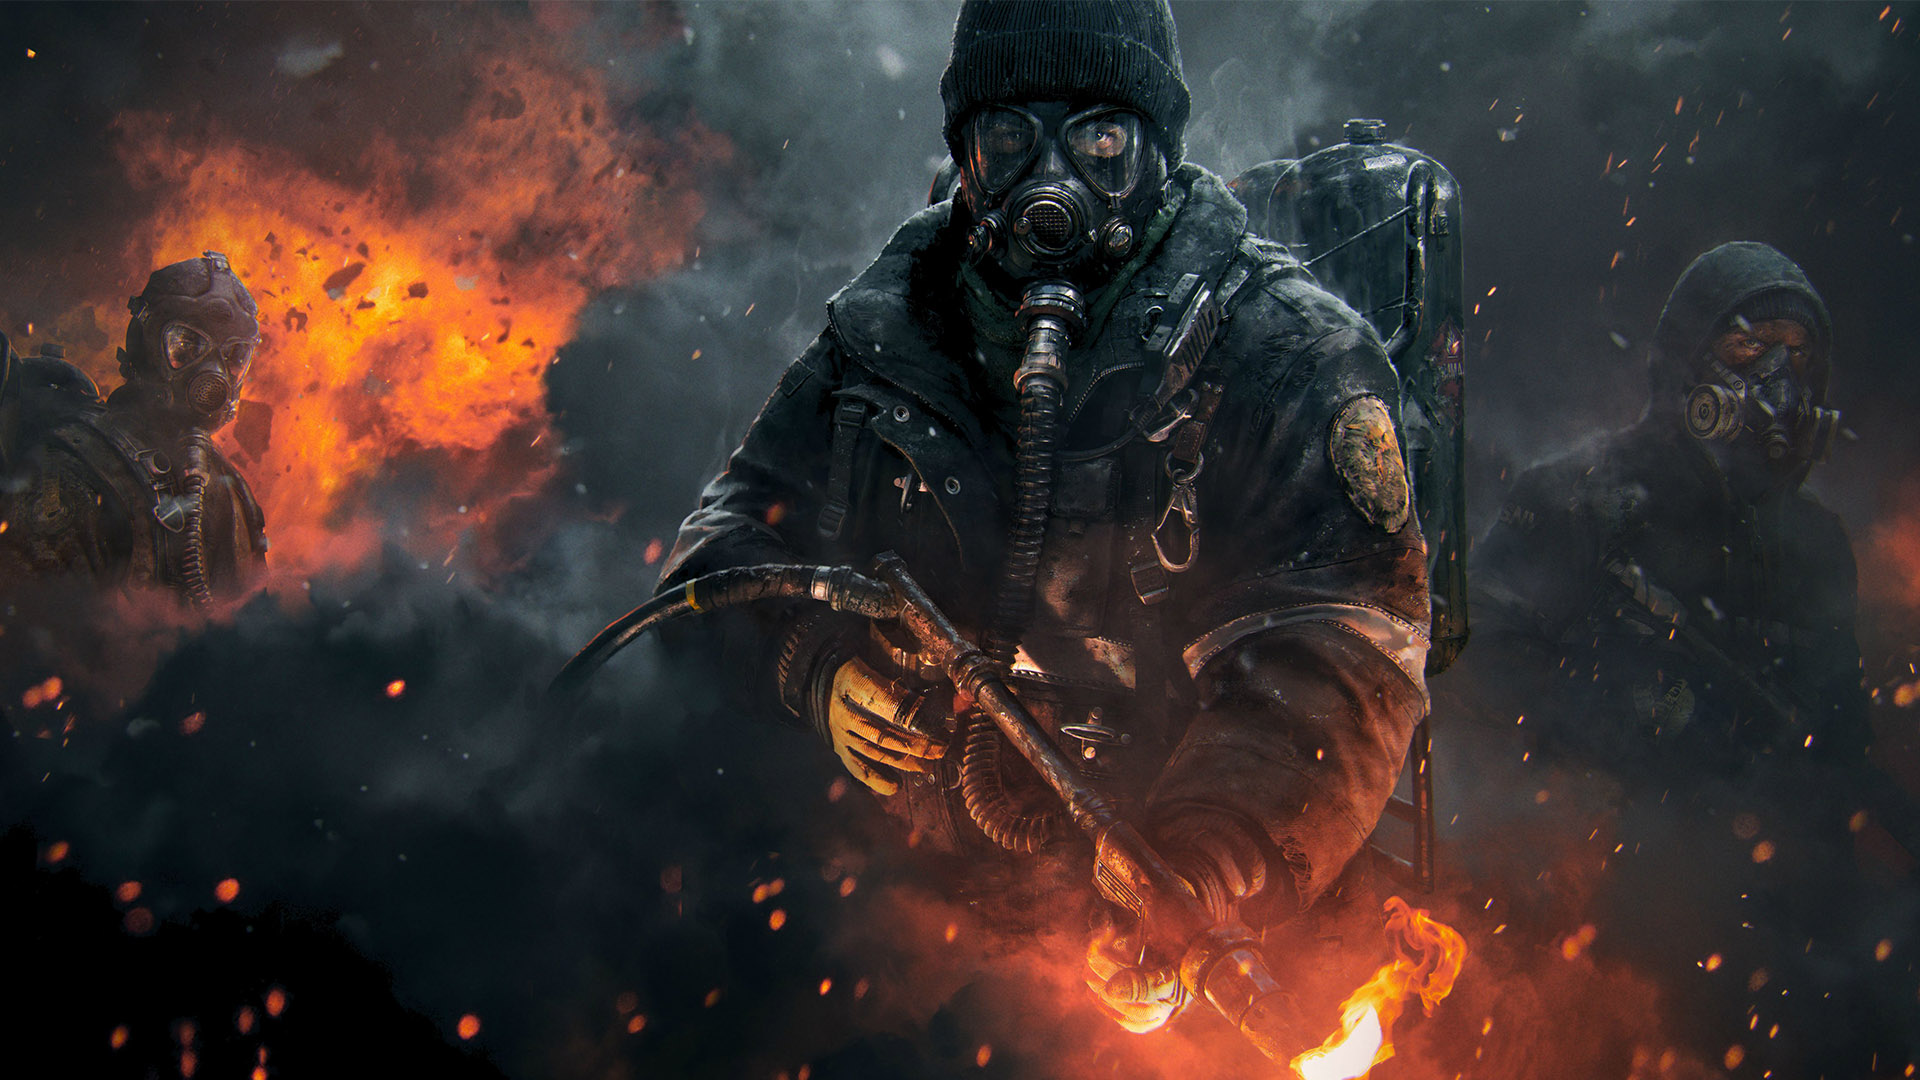 Tom Clancy's The Division 1920x1080 Wallpapers.